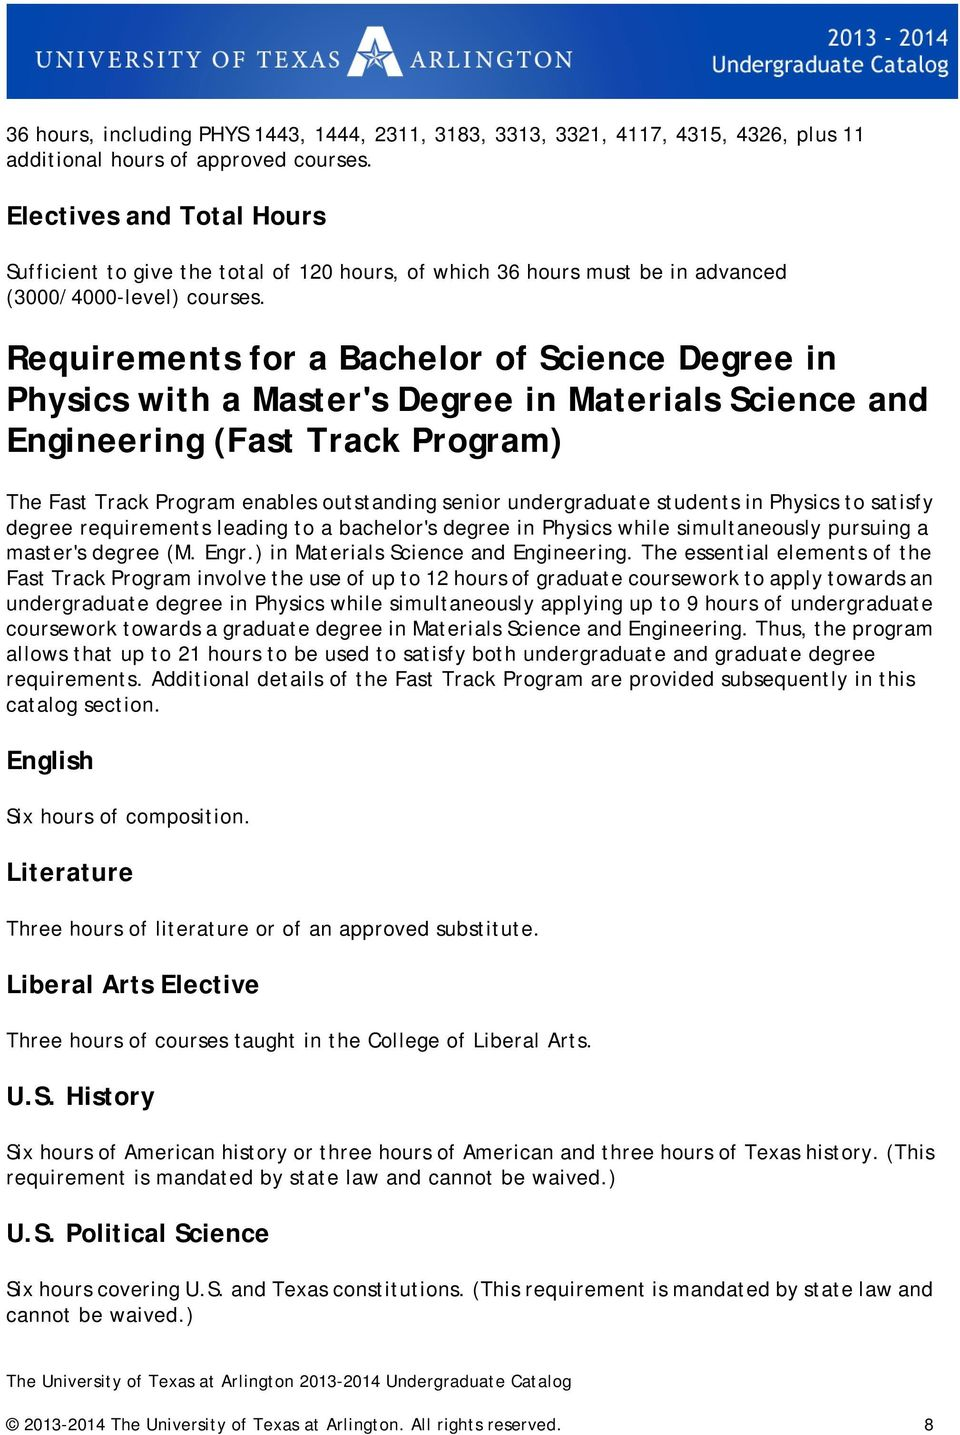 Requirements for a Bachelor of Science Degree in Physics with a Master's Degree in Materials Science and Engineering (Fast Track Program) The Fast Track Program enables outstanding senior